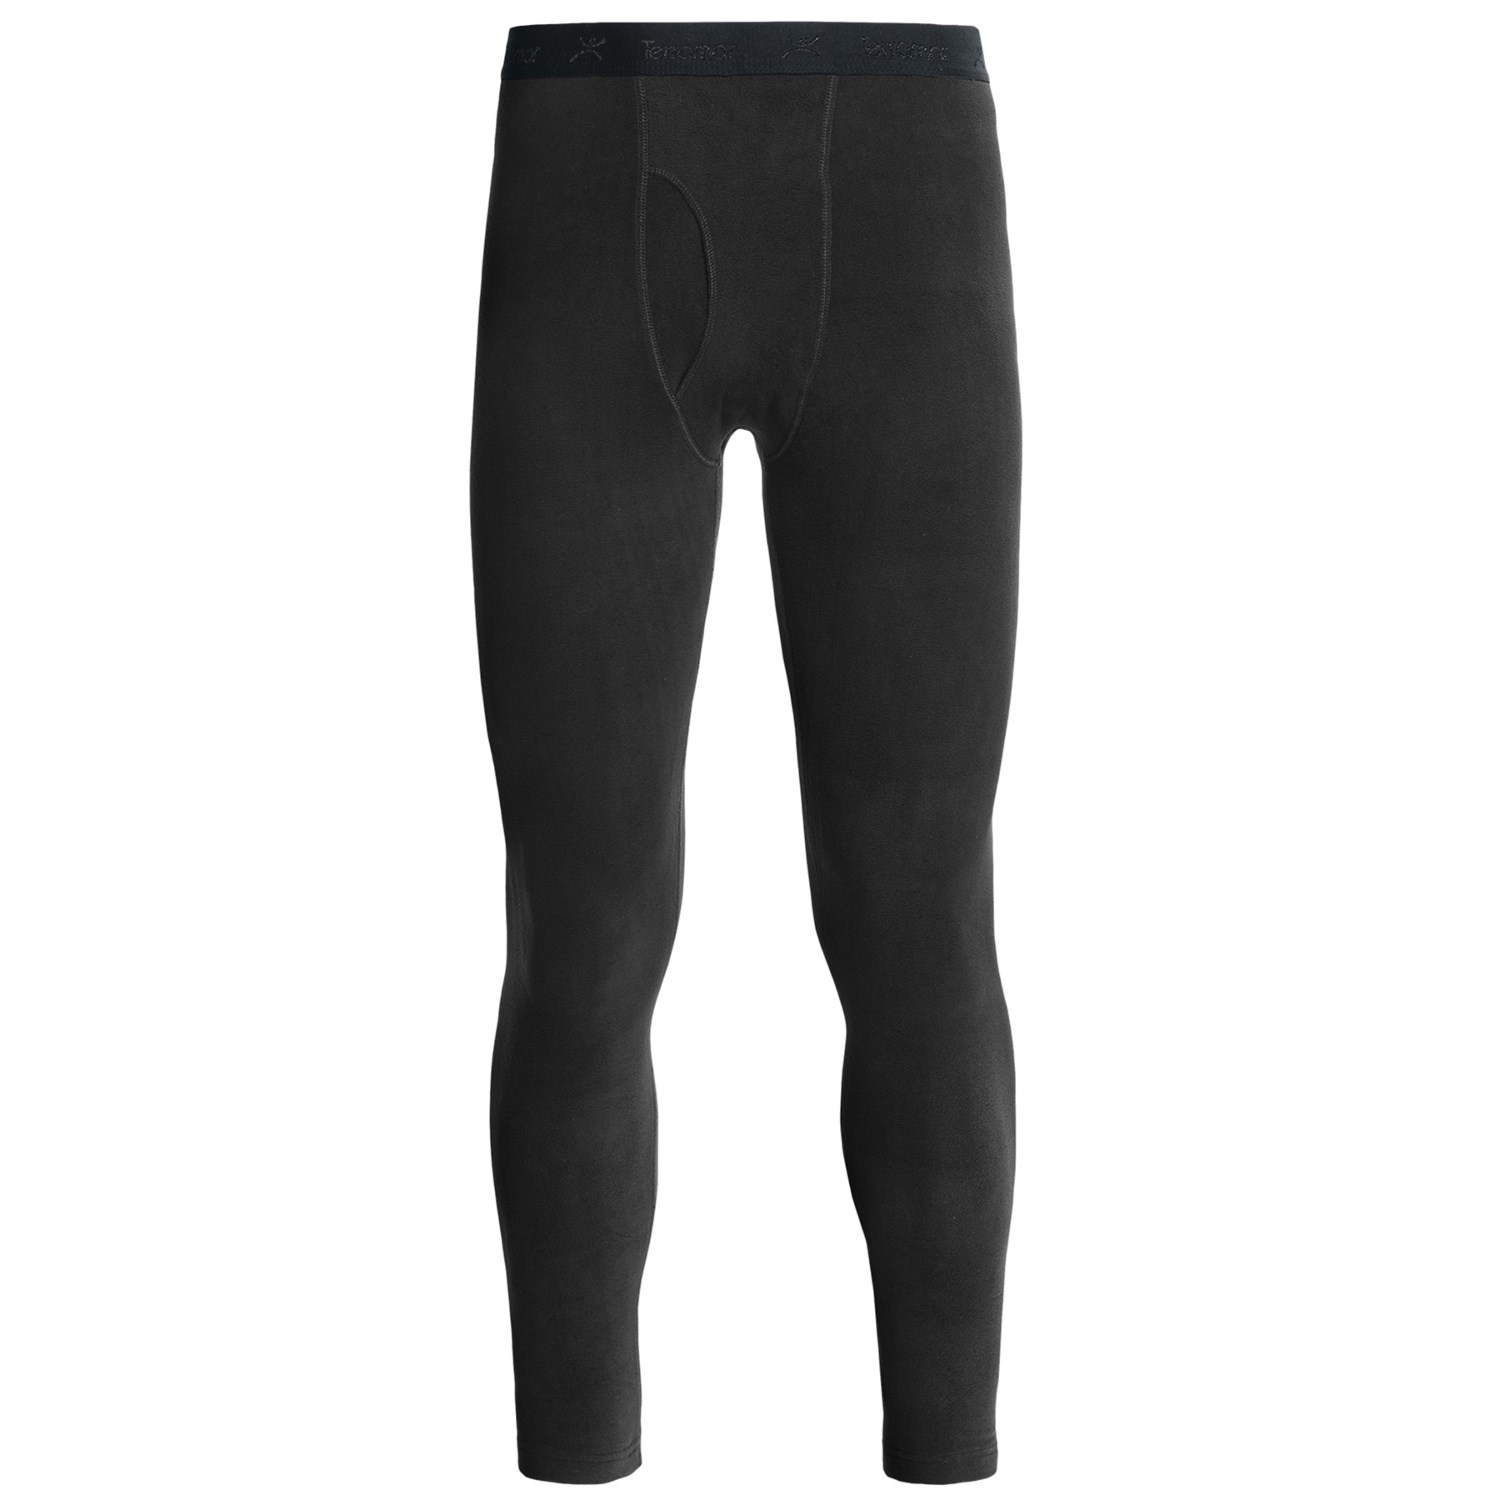 Tights offer more coverage than shorts as you push forward. But a variety of men's running shorts come with compression layers built in, so you can get both. Get creative and build your own layers with men's leggings and shorts made with a tech fabric like climacool® which has ventilated mesh inserts to stay dry and comfortable.